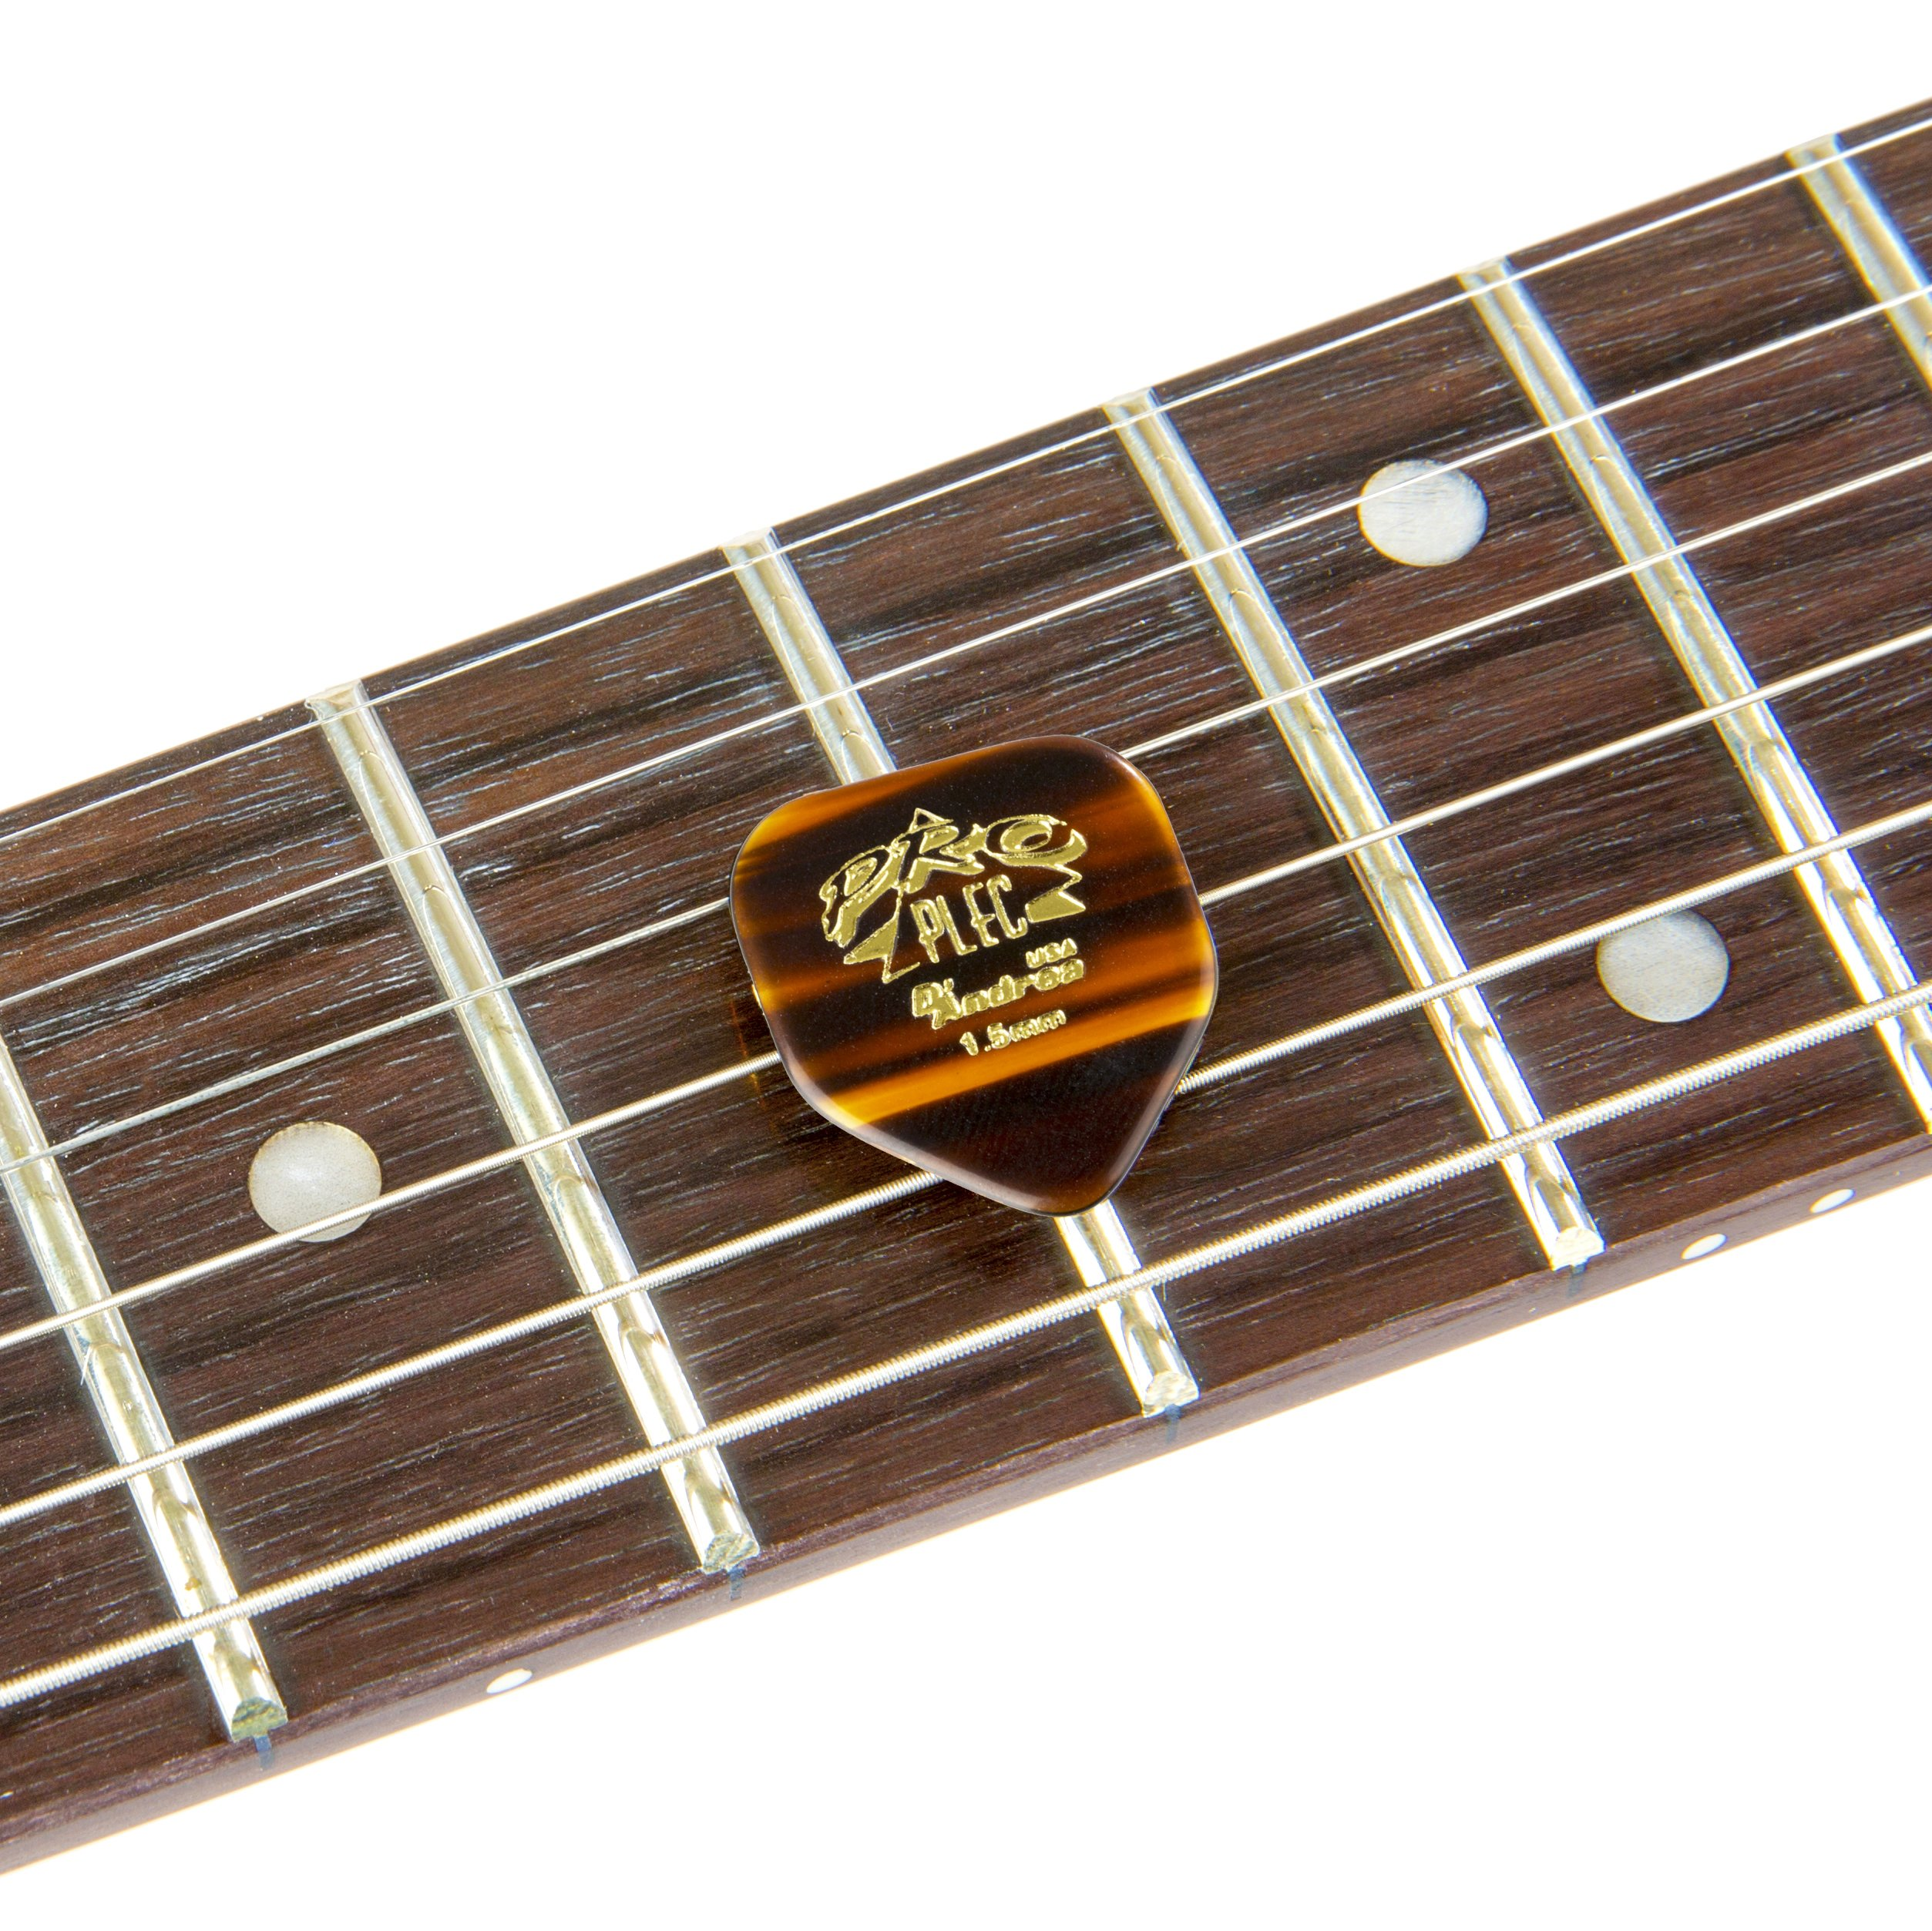 D/'Andrea PRO-330 Pro Plec 1.5mm Guitar Pick with Shell Finish 12 Piece, Pointed